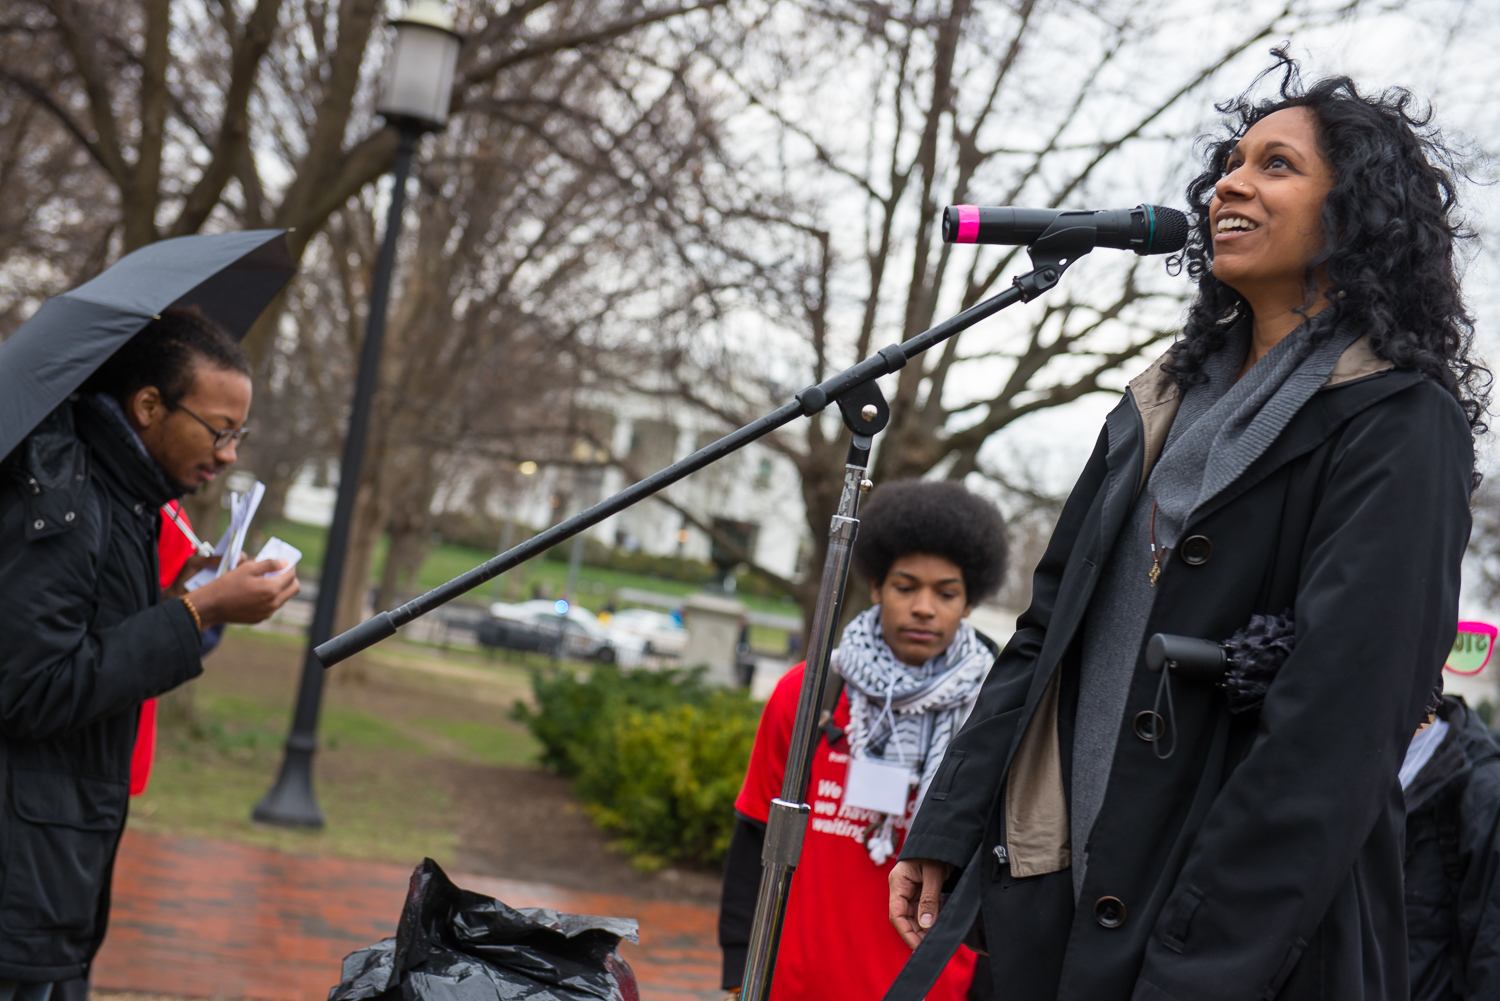 Image of Gowri Koneswaran standing behind a microphone in front of the White House. She wears a black trench coat and grey wool cowl neck sweater. She has a umbrella under her left arm with her hands by her sides and looks upwards with an inspired look.